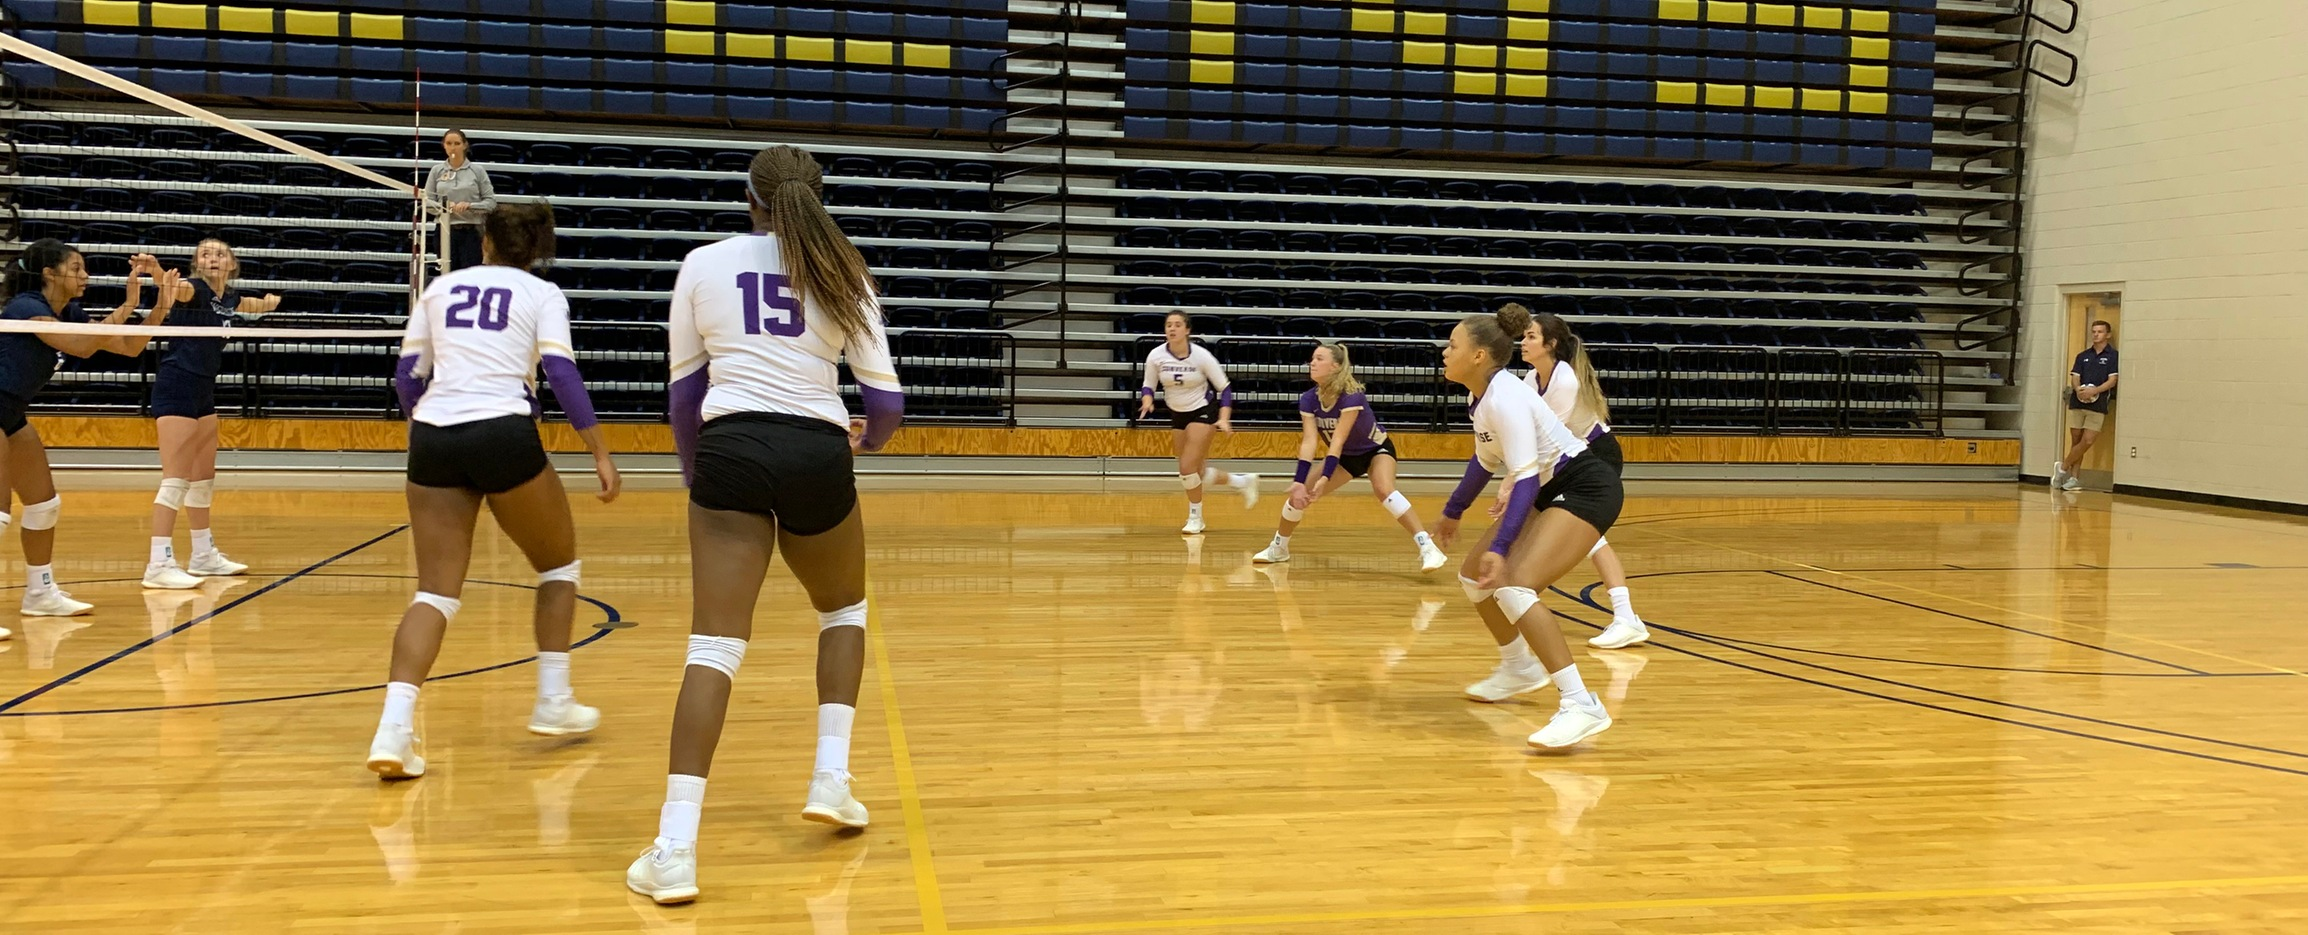 Welcome to the Block Party! Finkley's Record Day Leads Converse to Five Set Win Over Barton